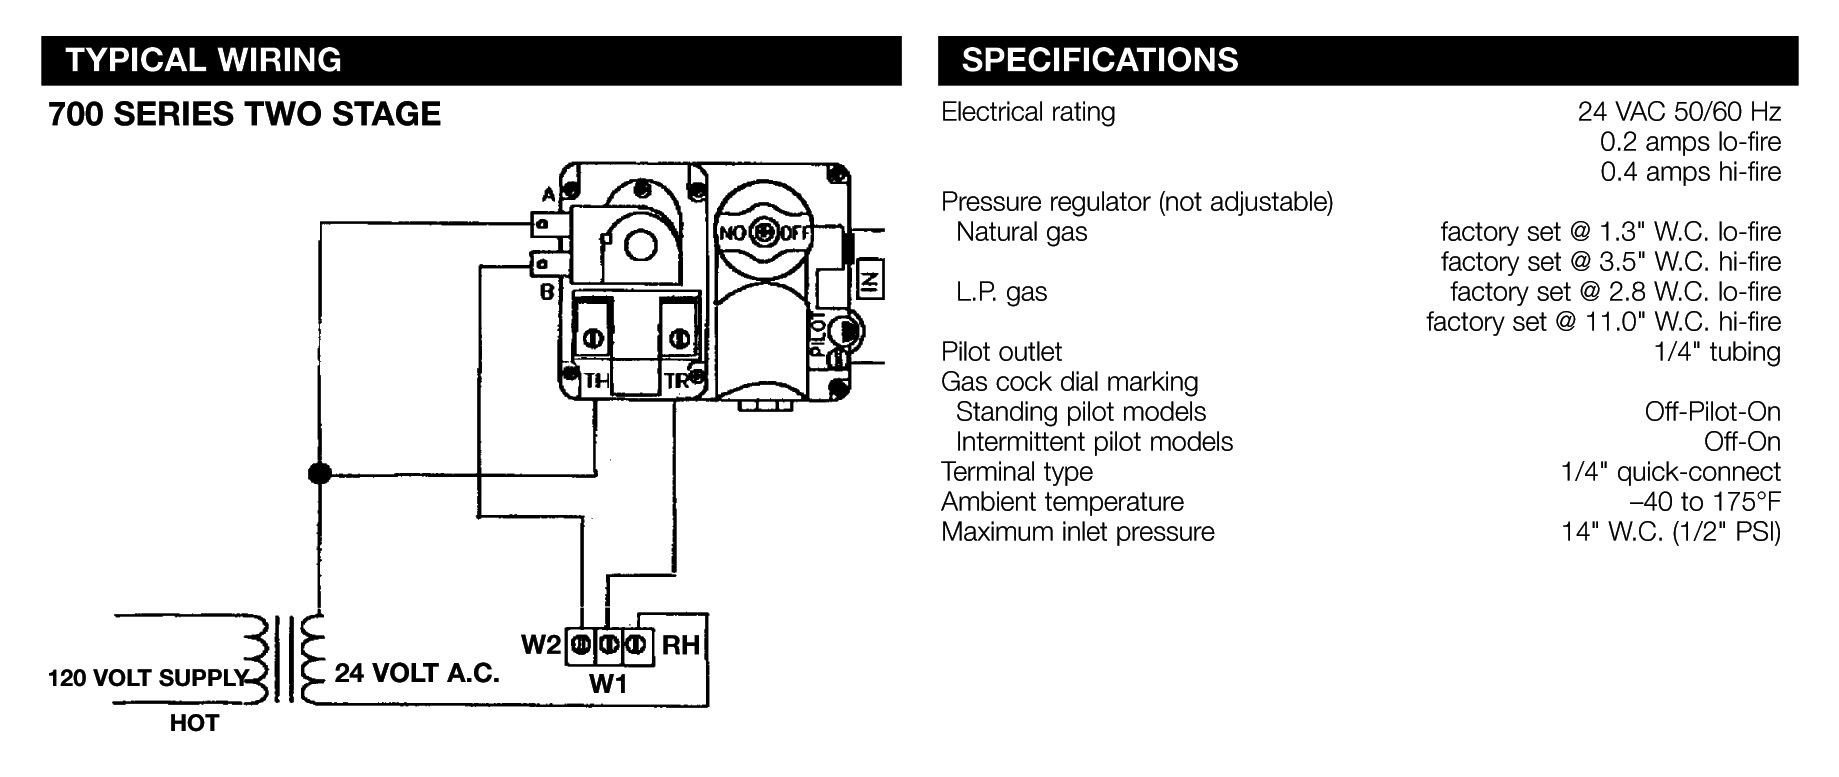 Gas Valve Relay Wiring Diagram Guide And Troubleshooting Of Heater With Thermostat On White Rodgers Hvac Fan Honeywell Information Fireplace